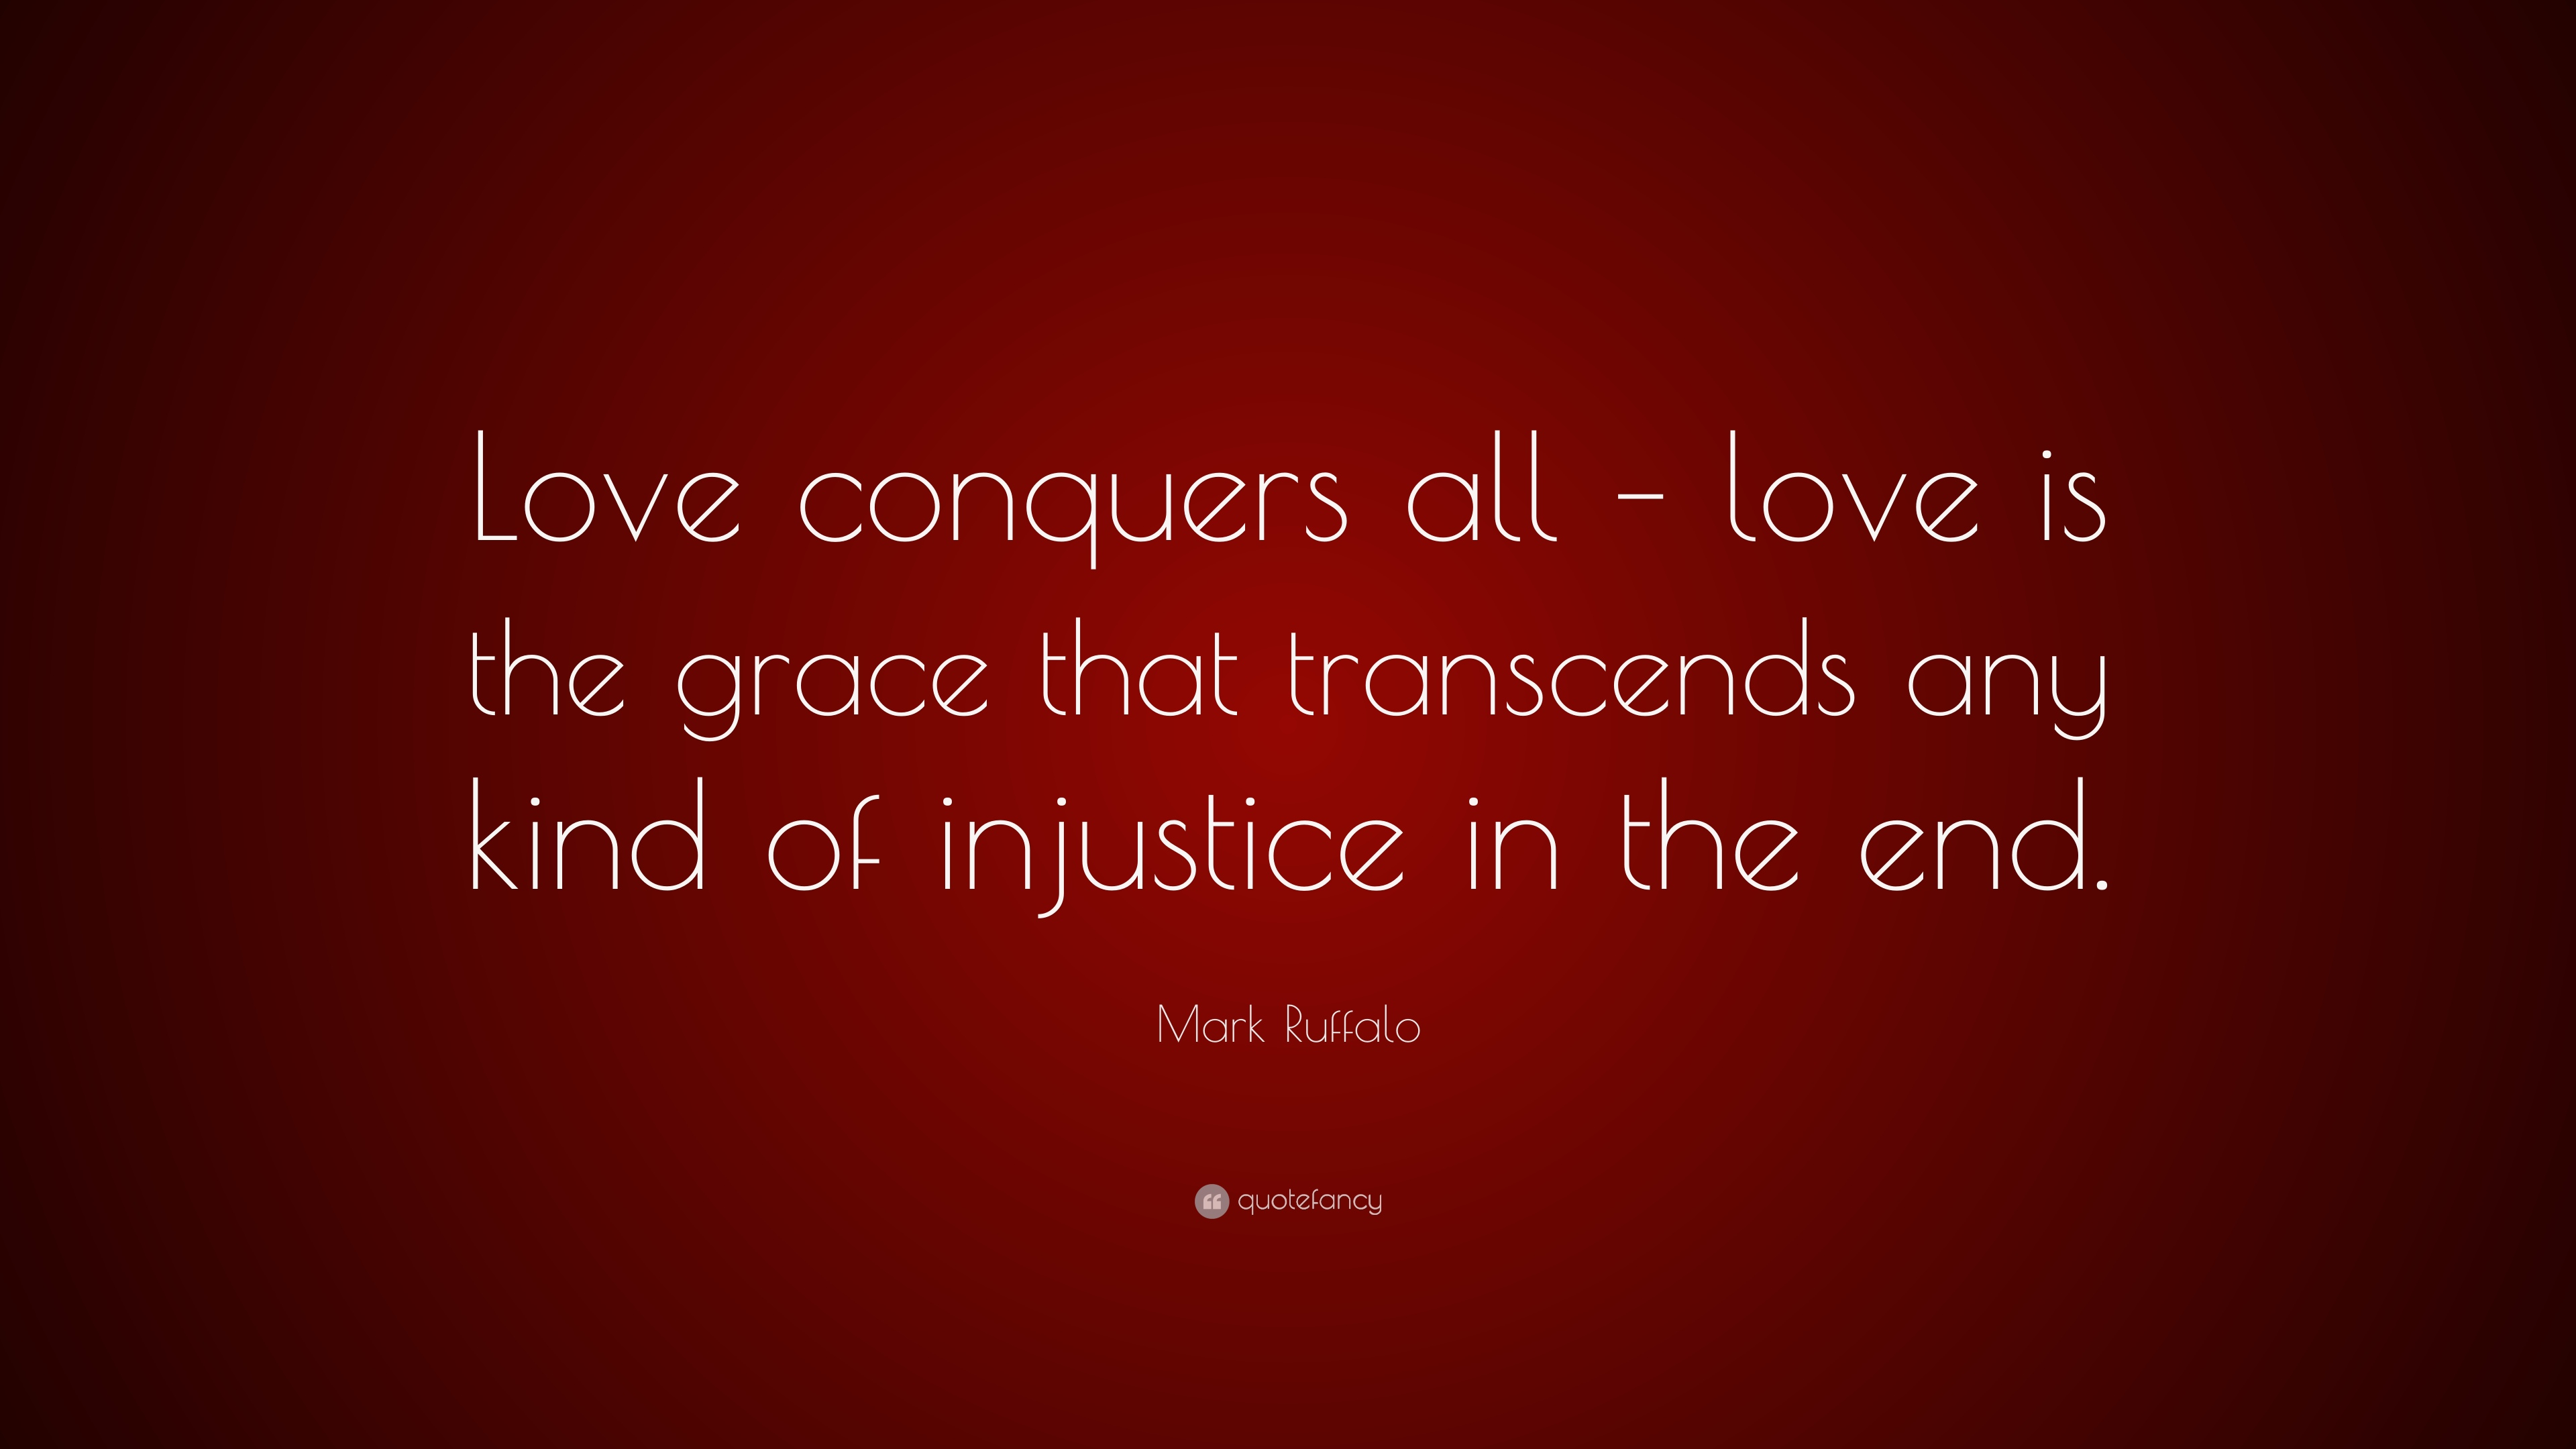 Mark Ruffalo Quote: ?Love conquers all love is the grace that transcends any kind of injustice ...